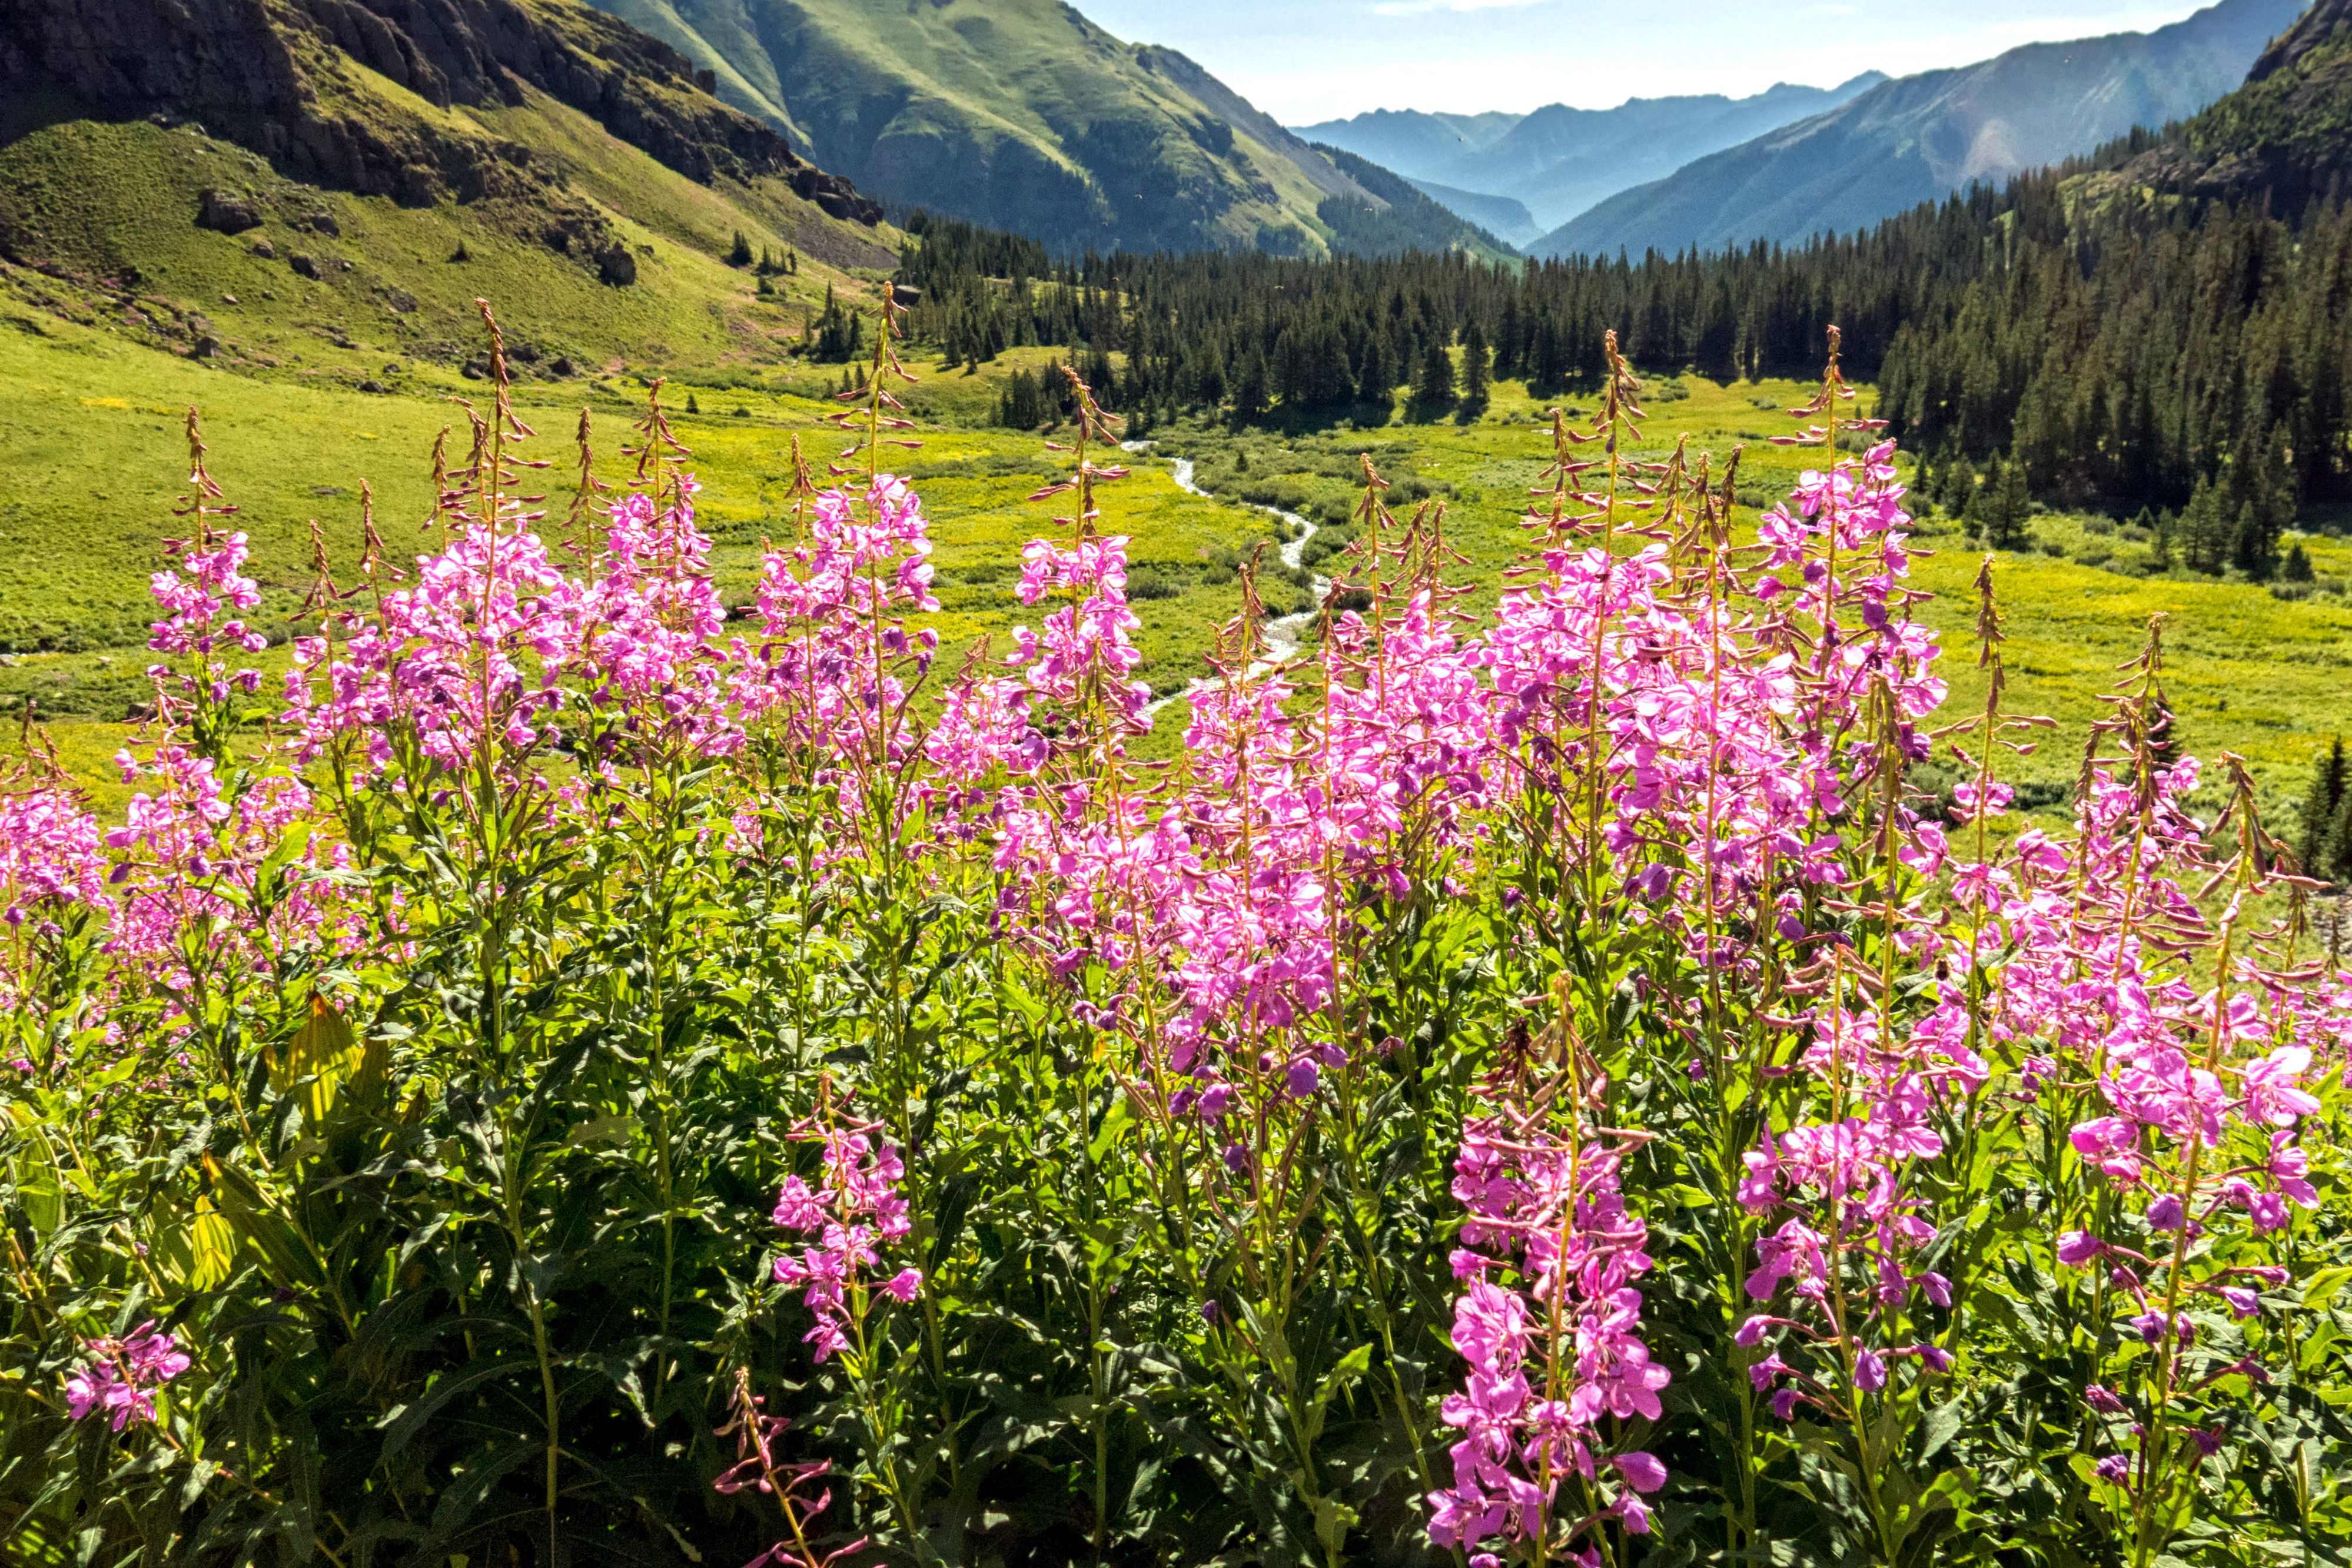 Fireweed wildflowers in Colorado mountains